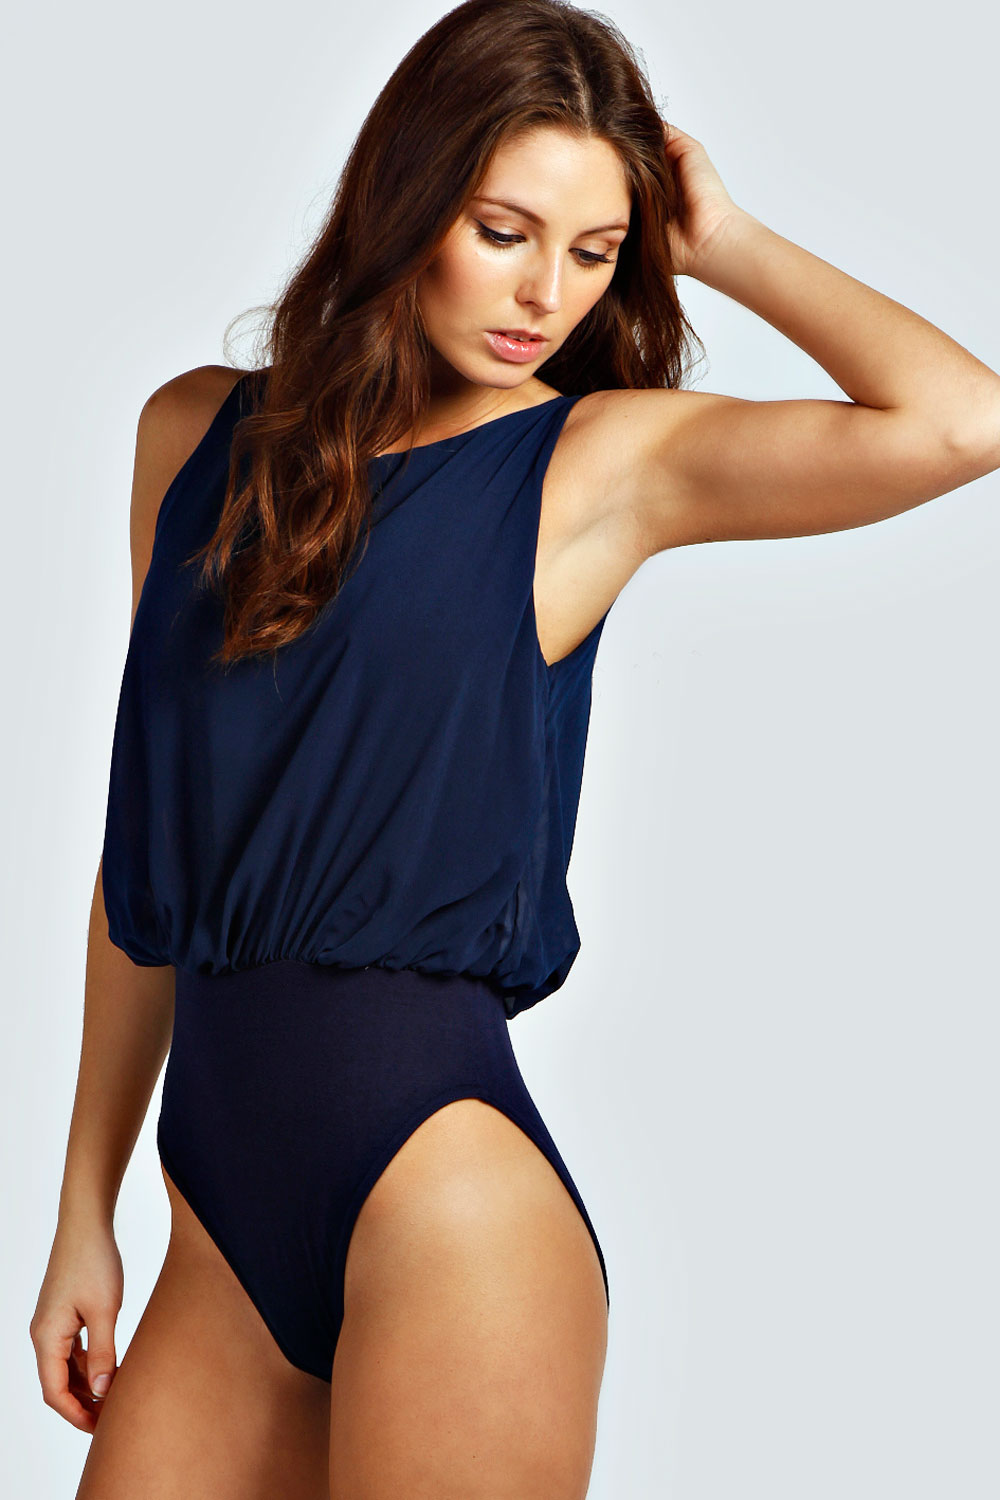 Bodysuits for Women 68 results 1 / 1 Out From Under MJ Tube Top Bodysuit $ now $ + 5 + 8 colors Quick Shop. Out From Under MJ Tube Top Bodysuit $ now $ + 5 + 8 colors Quick Shop. Out From Under Brianna Off-The-Shoulder Bodysuit.